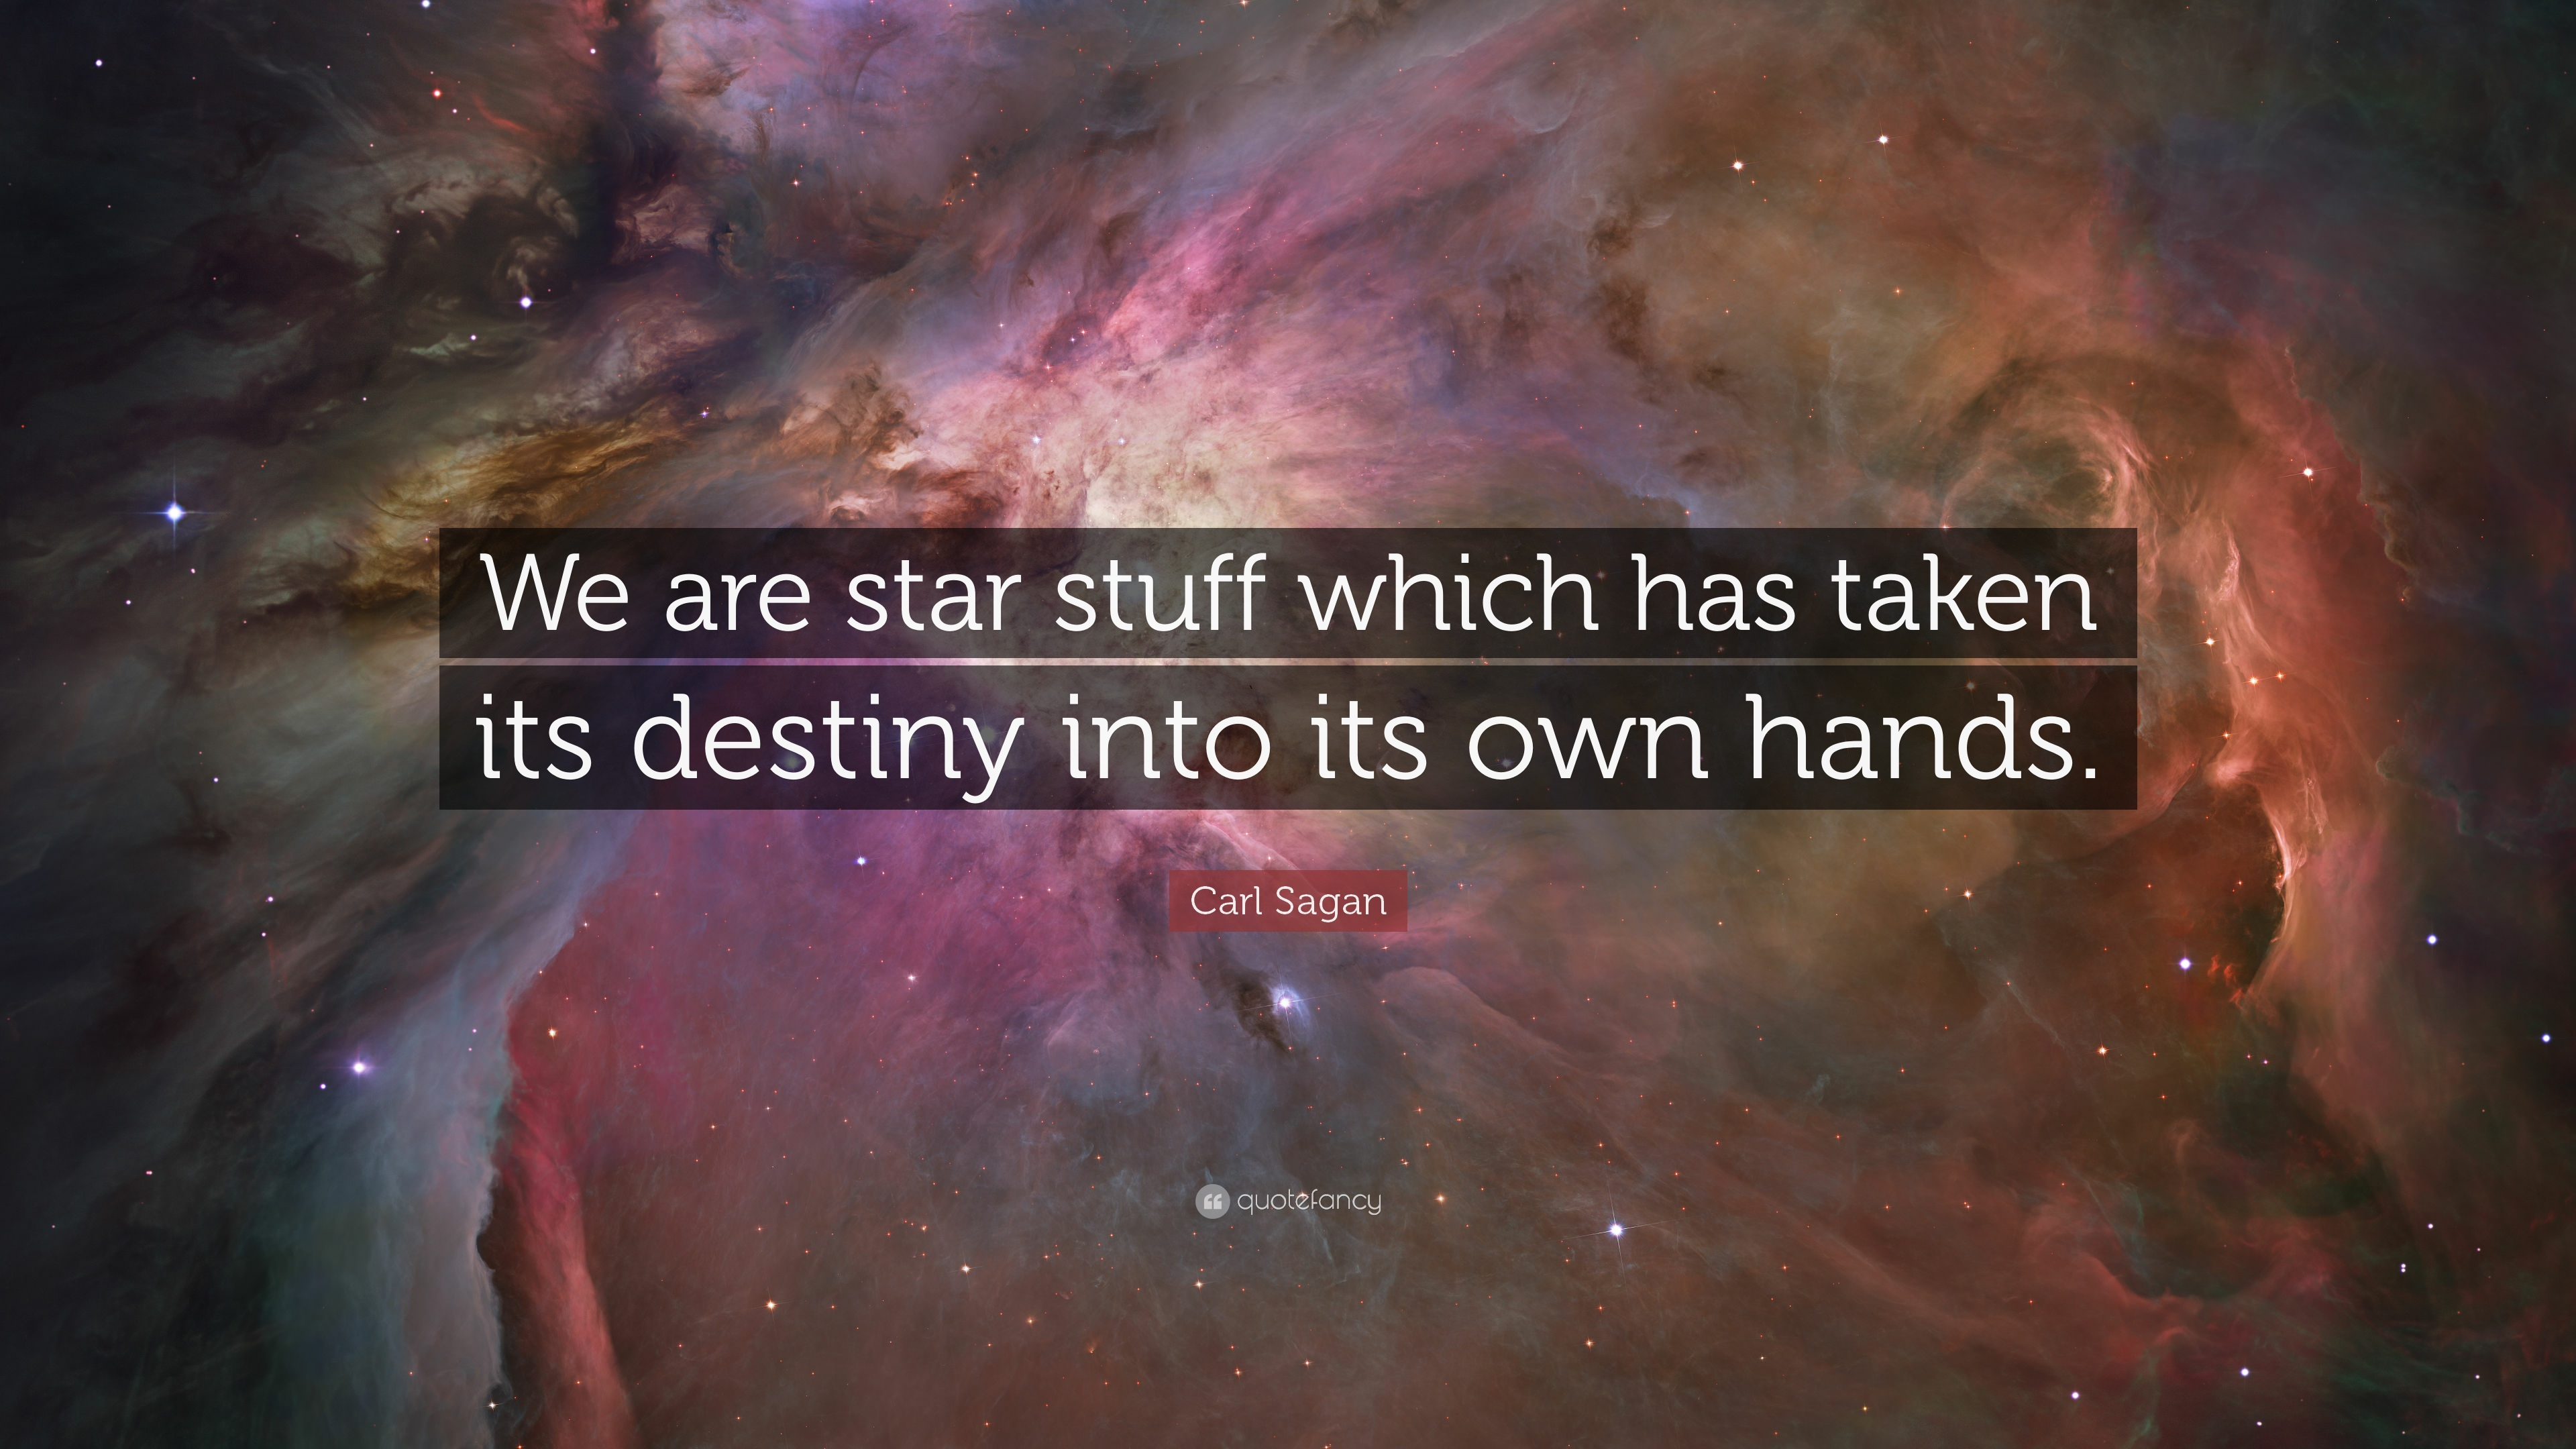 carl sagan quote we are star stuff which has taken its destiny